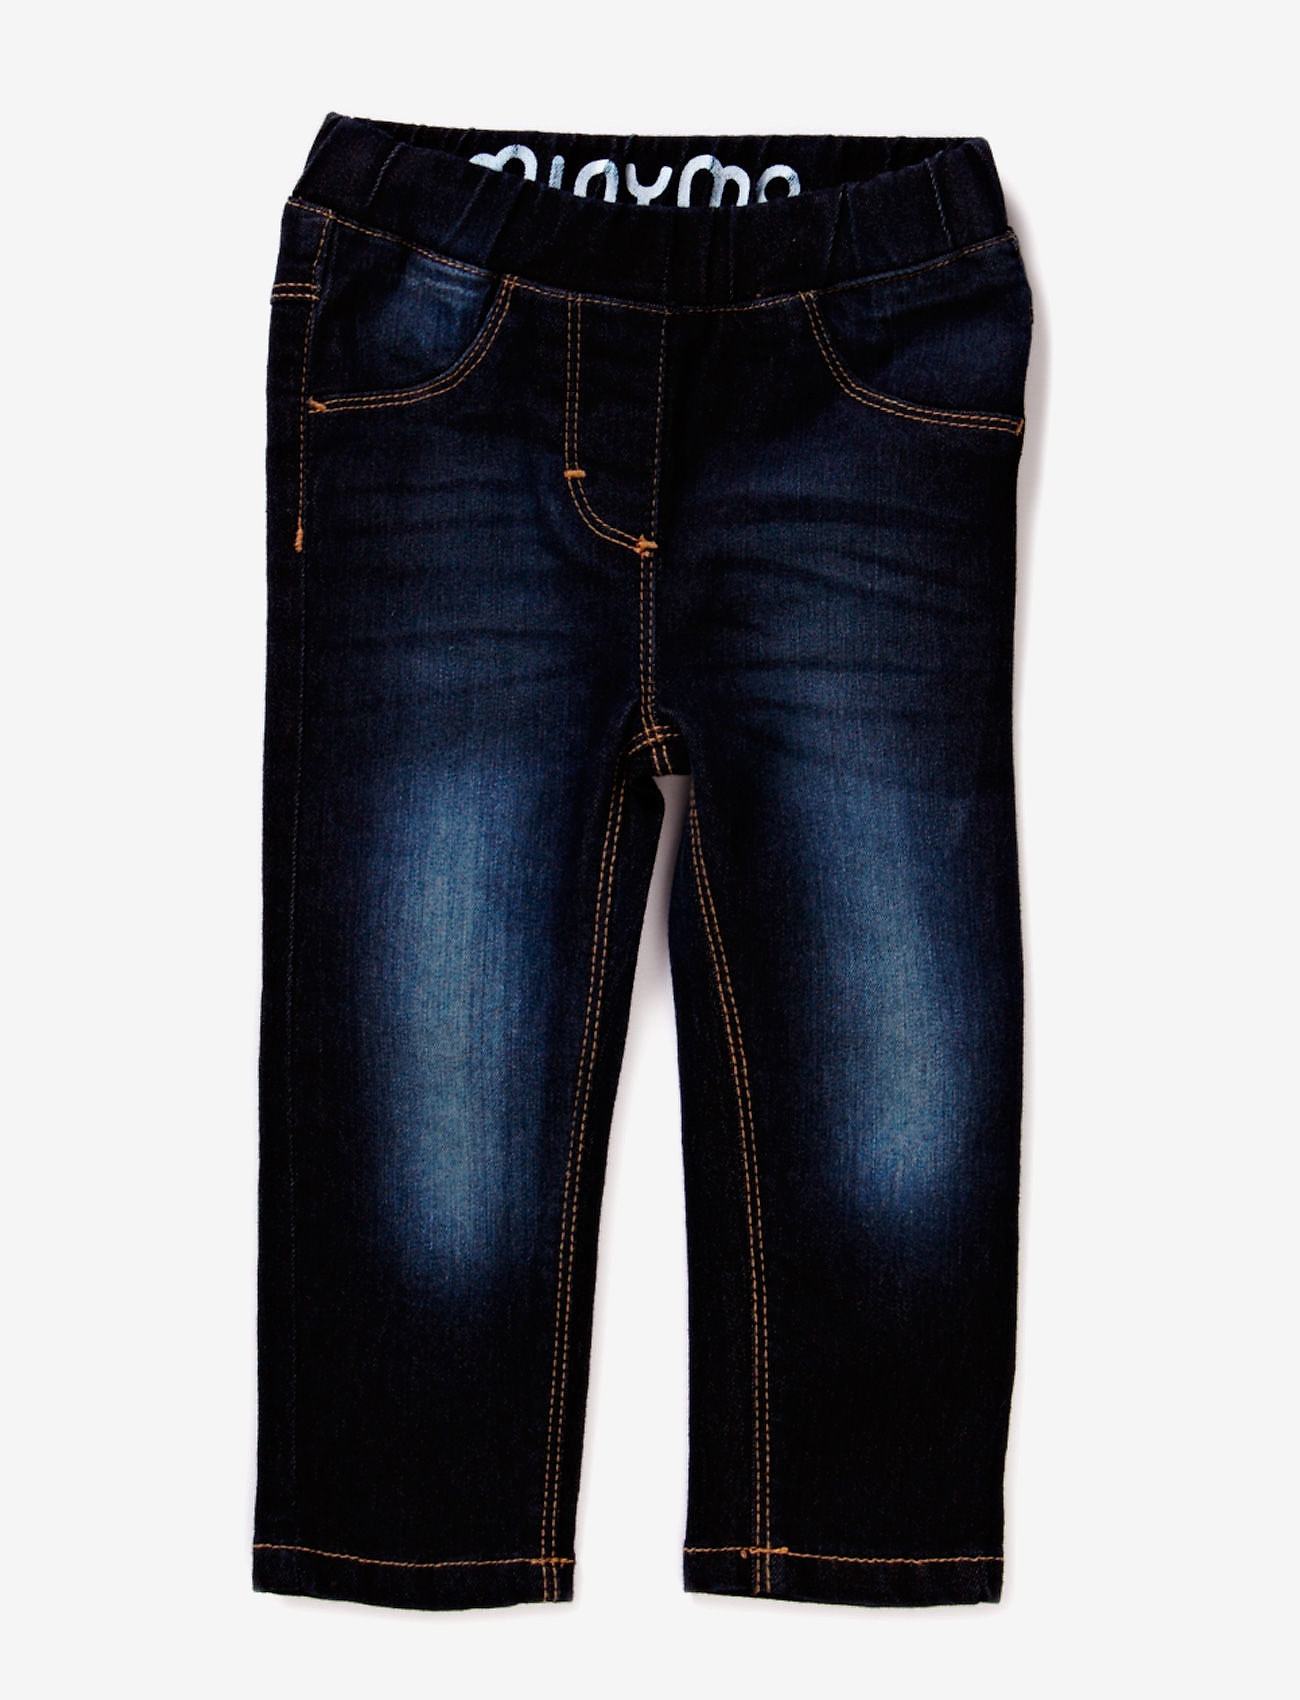 Minymo - Jeans girl - Slim fit - jeans - dark blue denim - 0